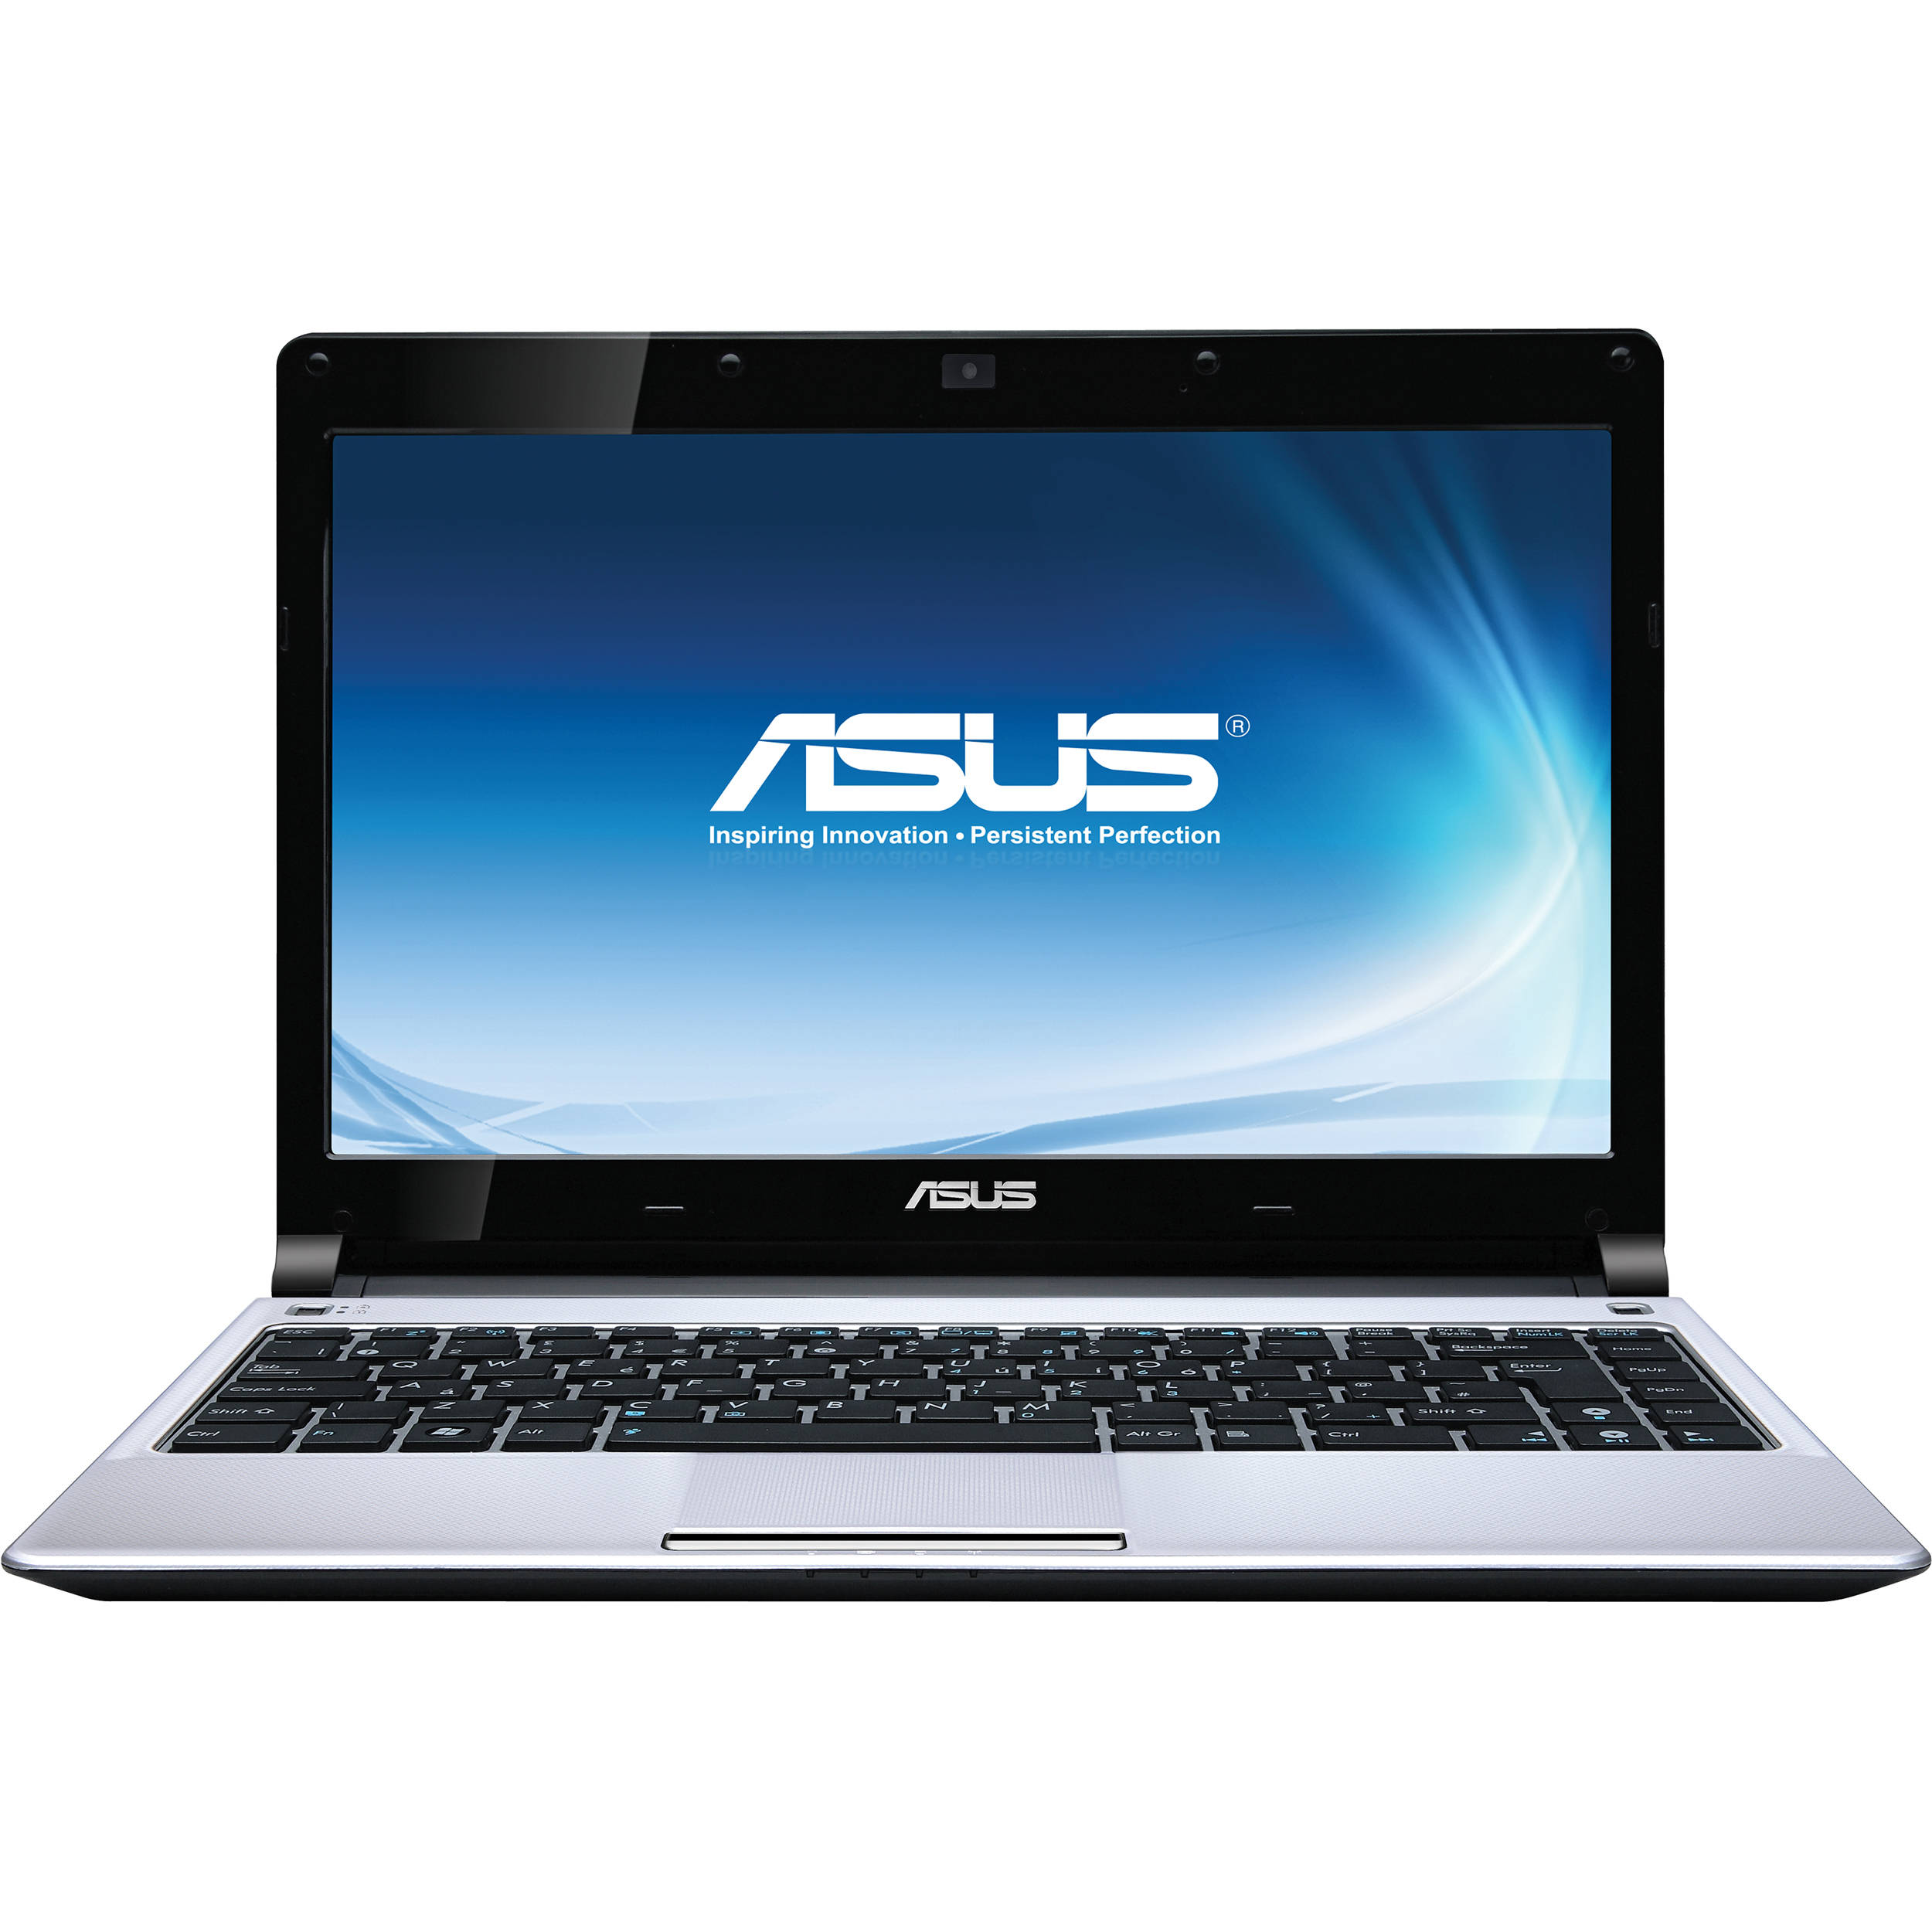 ASUS U35JC KEYBOARD DEVICE WINDOWS 7 64BIT DRIVER